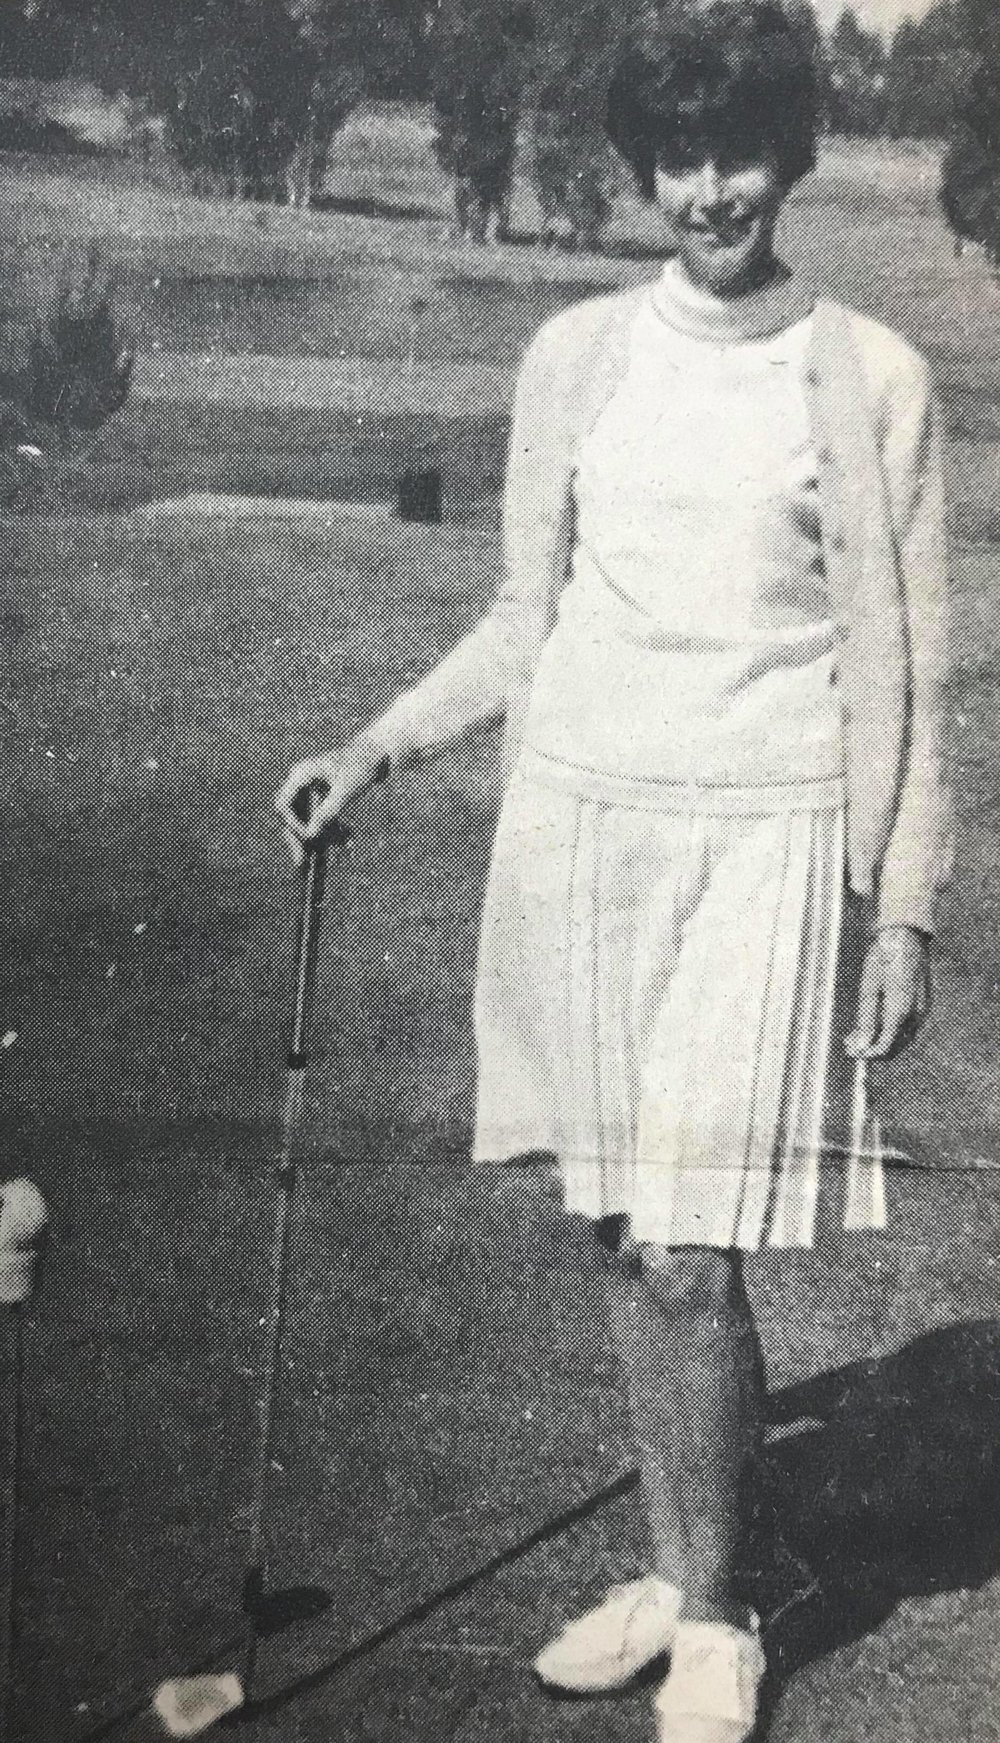 SCORES ACE—Mrs. Rex Ballingee, of Buttonwillow, made a hole-in-one during the PWGA tournament at Black Lake last weekend. She scored the ace with a driver on the 140-yard fifth hole. Witnesses were her husband, Rex, and their opponents, Normal Howell, of Oakland; and Mrs. C.J. Wigge, of Alameda.